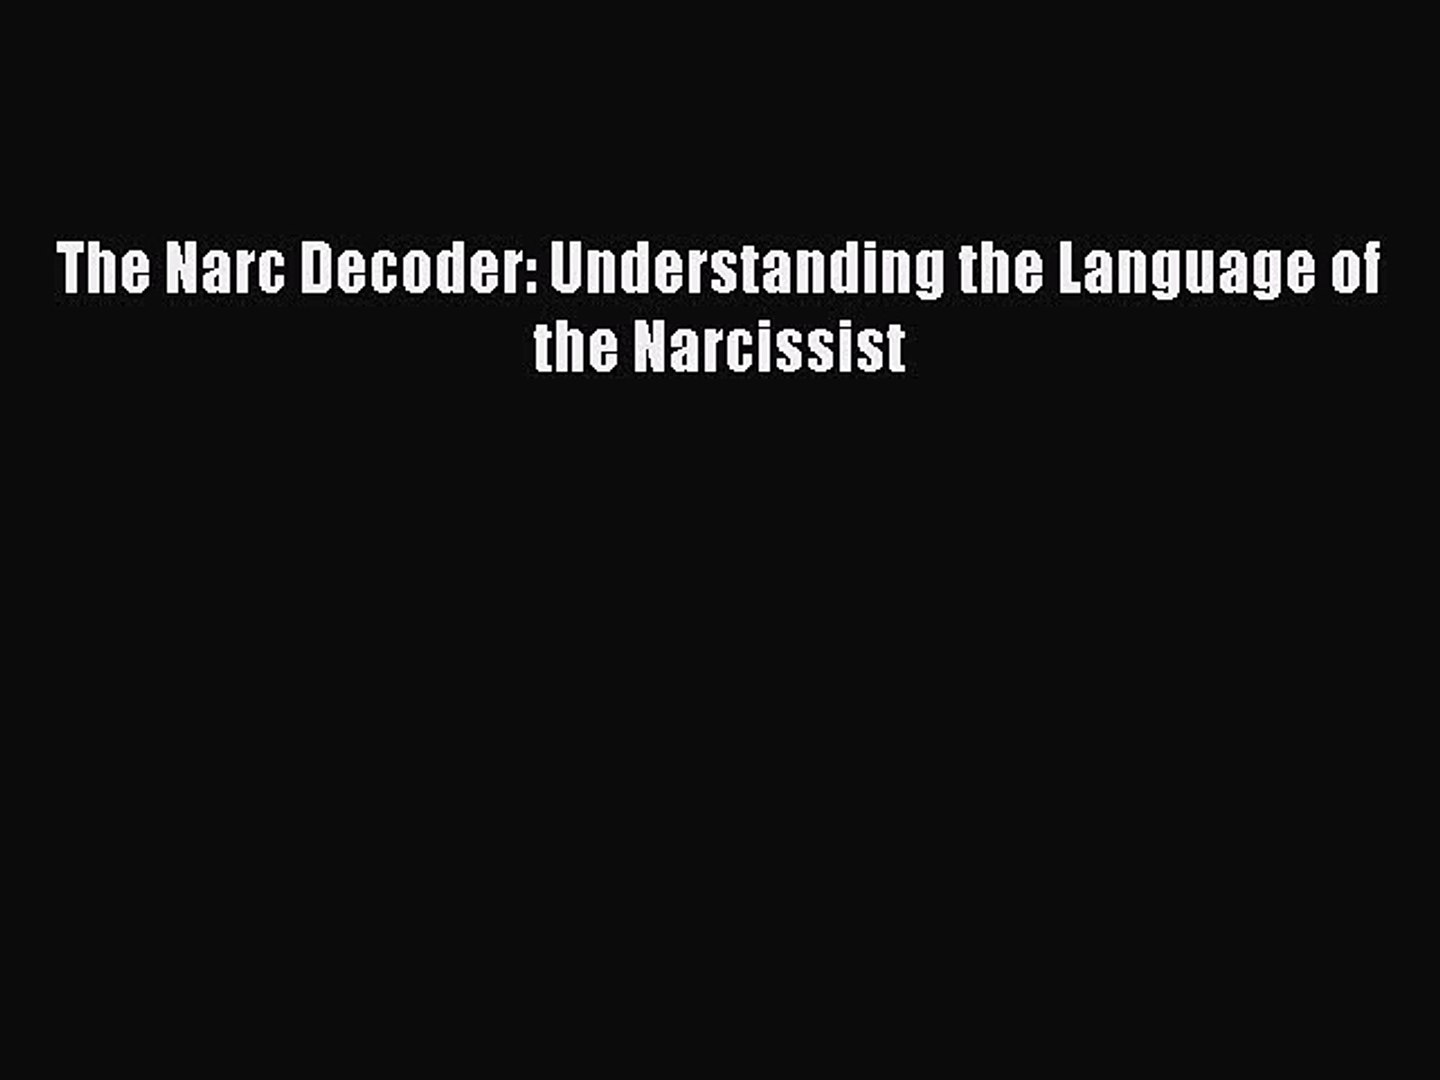 [Download] The Narc Decoder: Understanding the Language of the Narcissist  Free Books